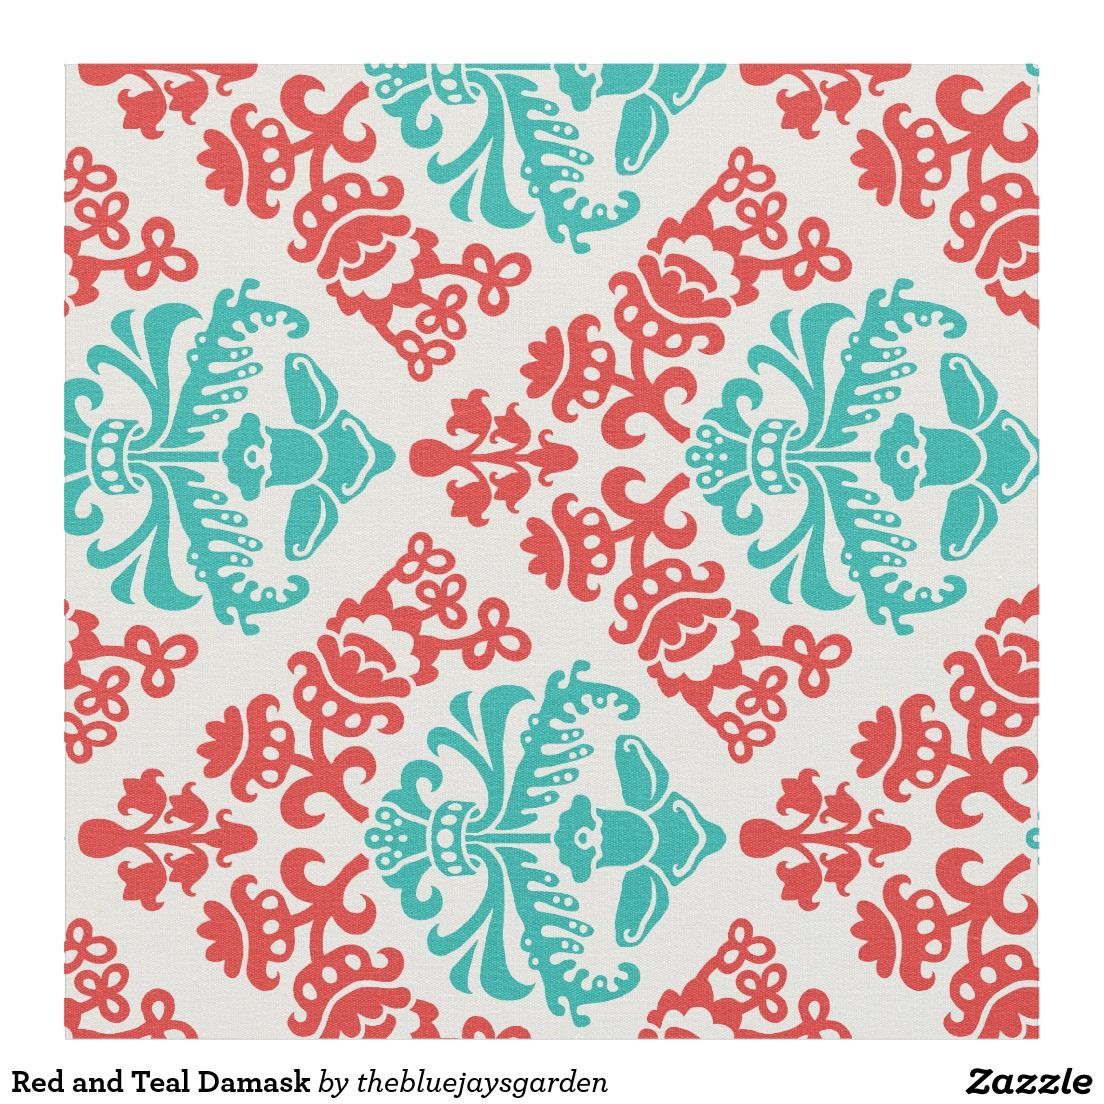 Red and Teal Damask Fabric images